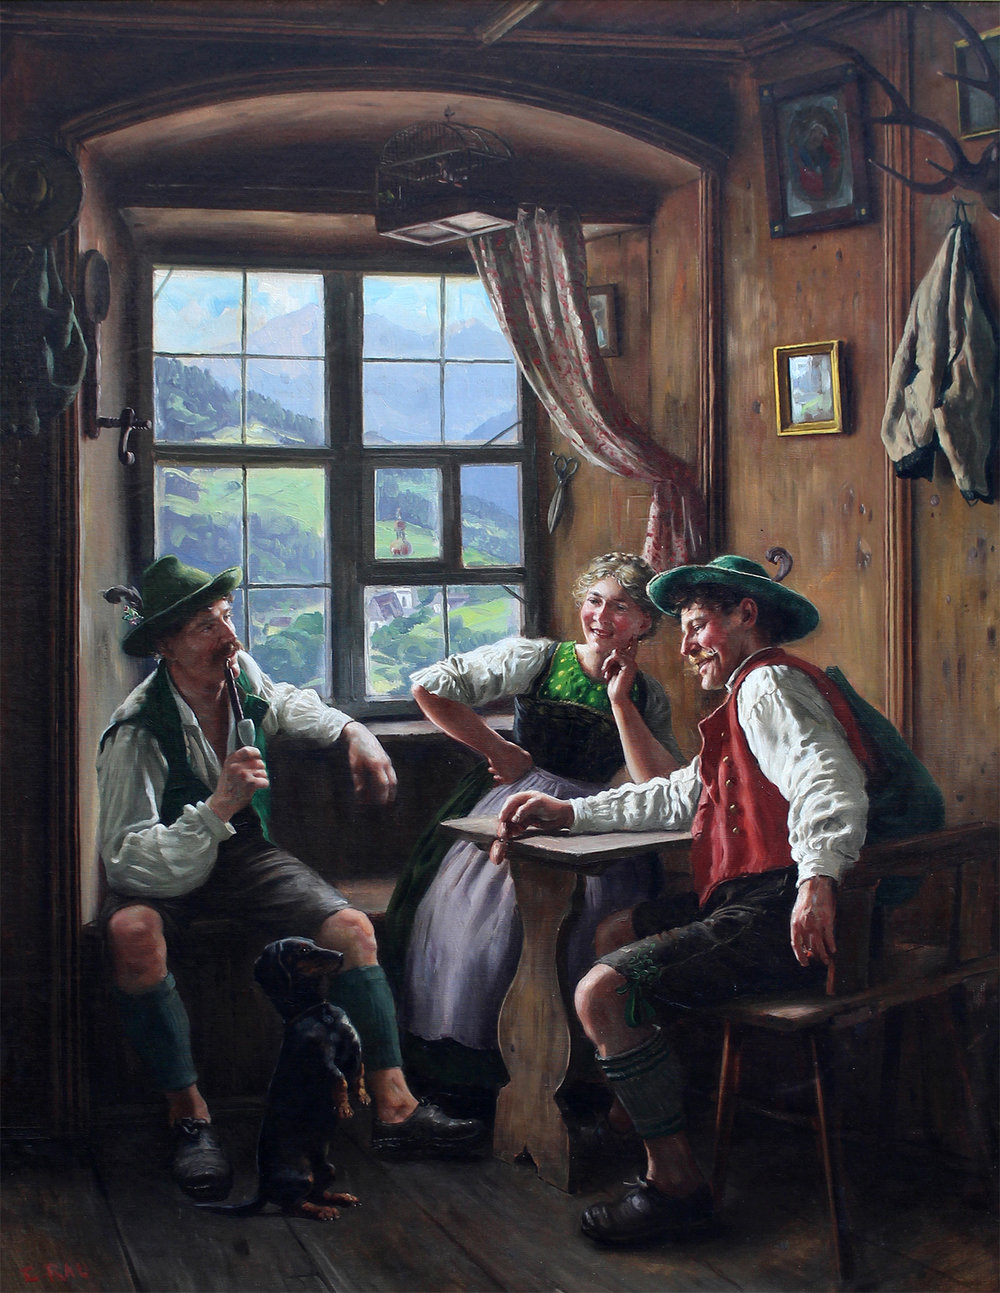 Emil Rau (German 1858-1937) 'Life in the Alps'